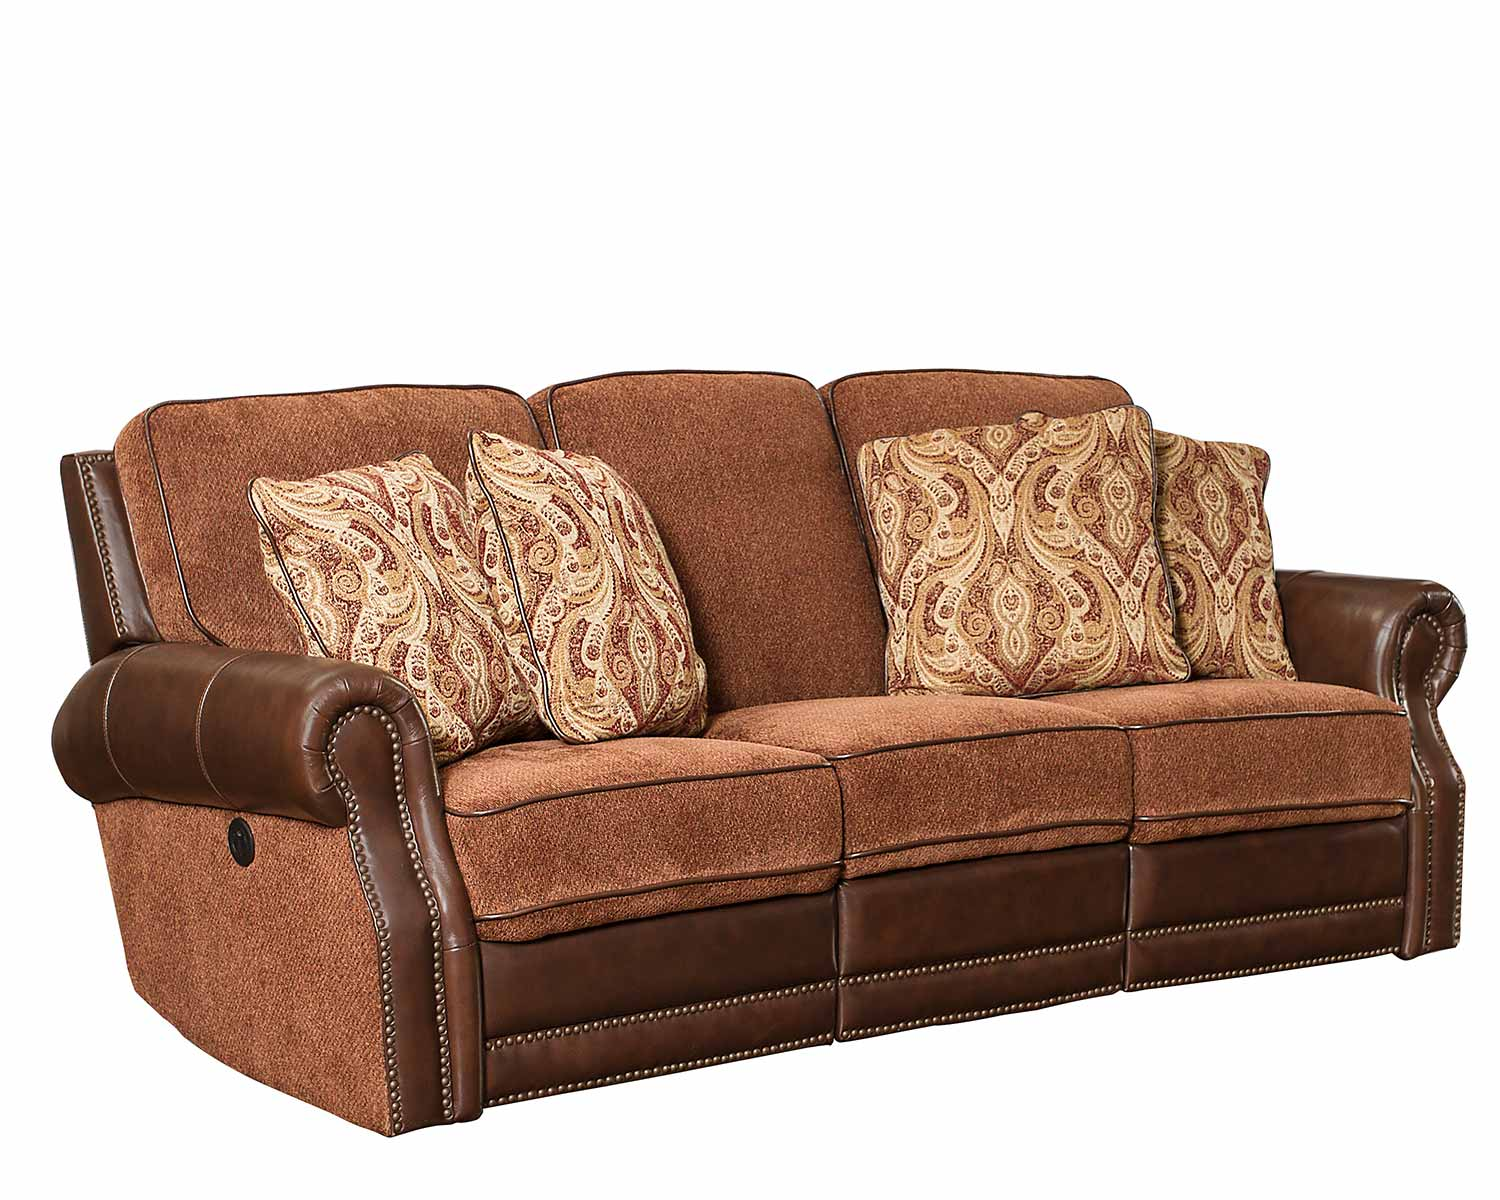 Barcalounger Jefferson Power Reclining Sofa - Yadkin Bark/Caravane Auburn fabric